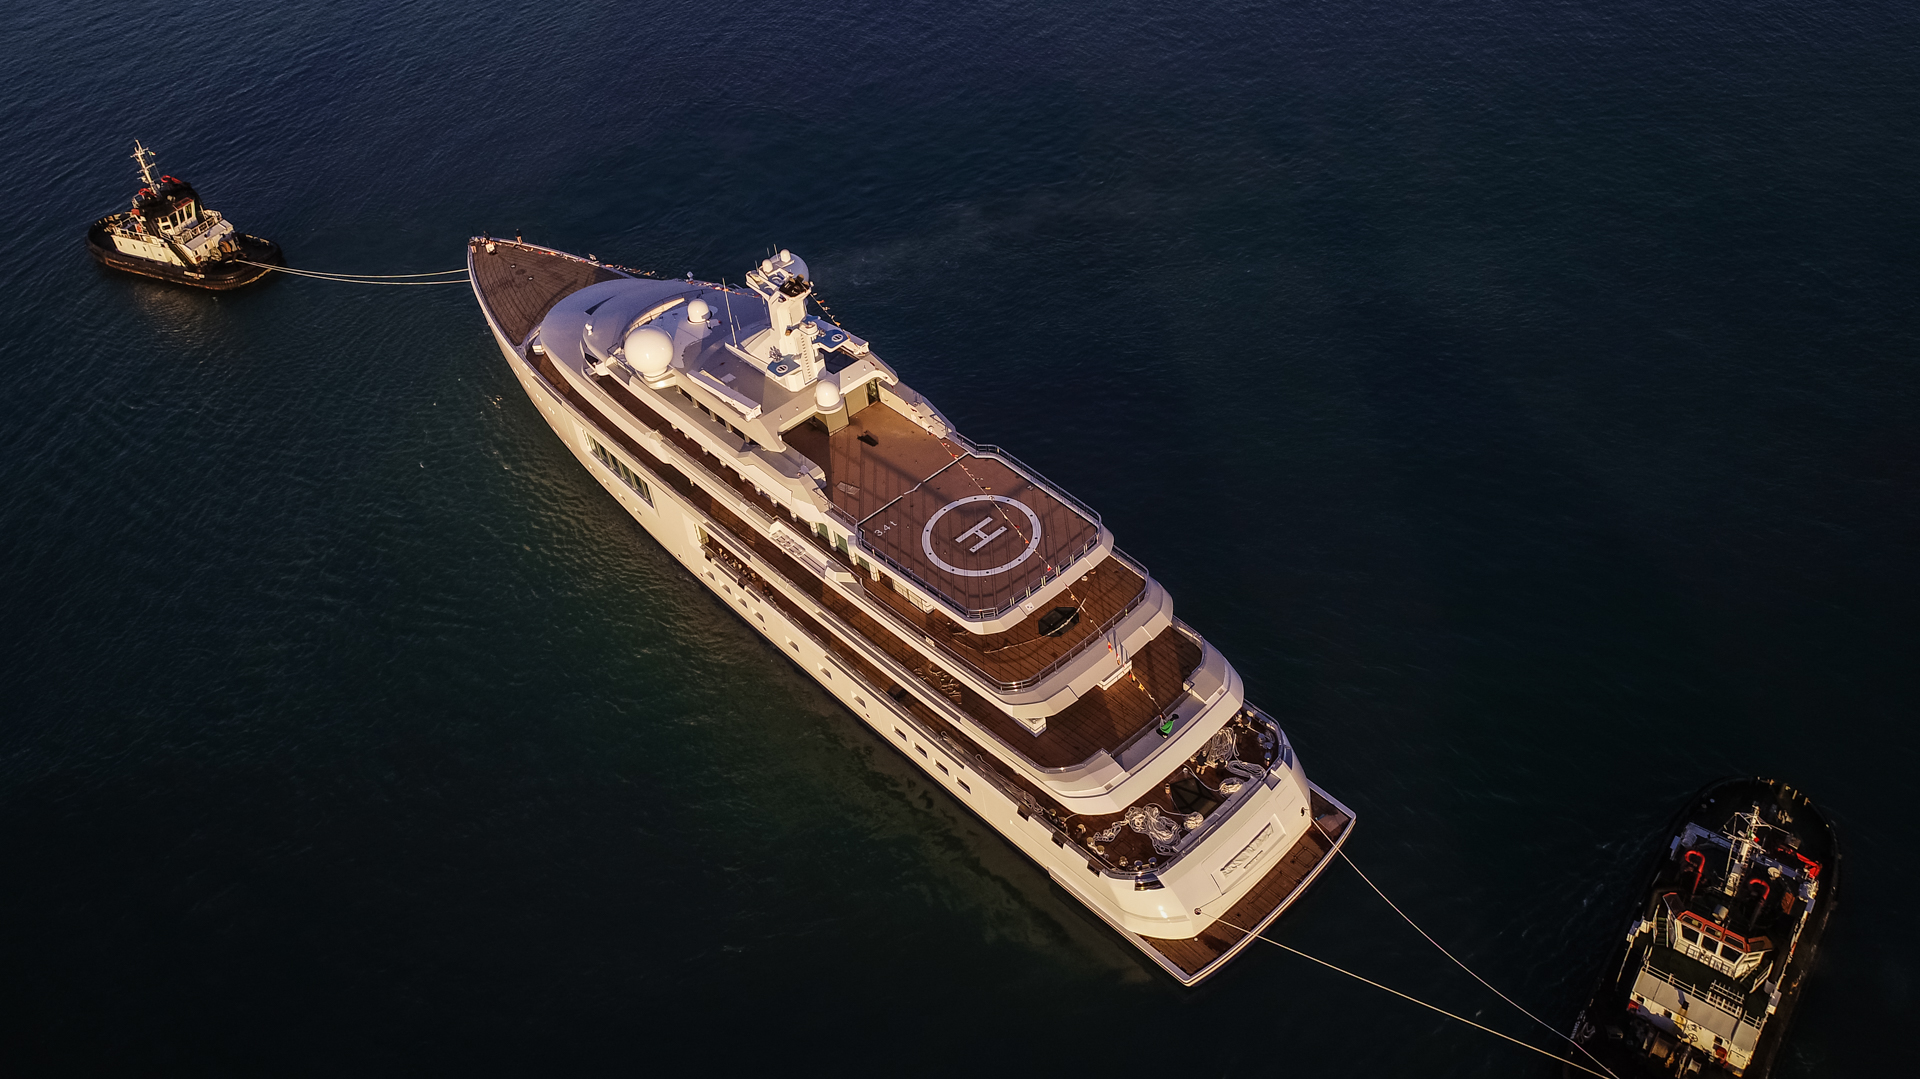 Benetti FB272 aerial view - Photo © Benetti